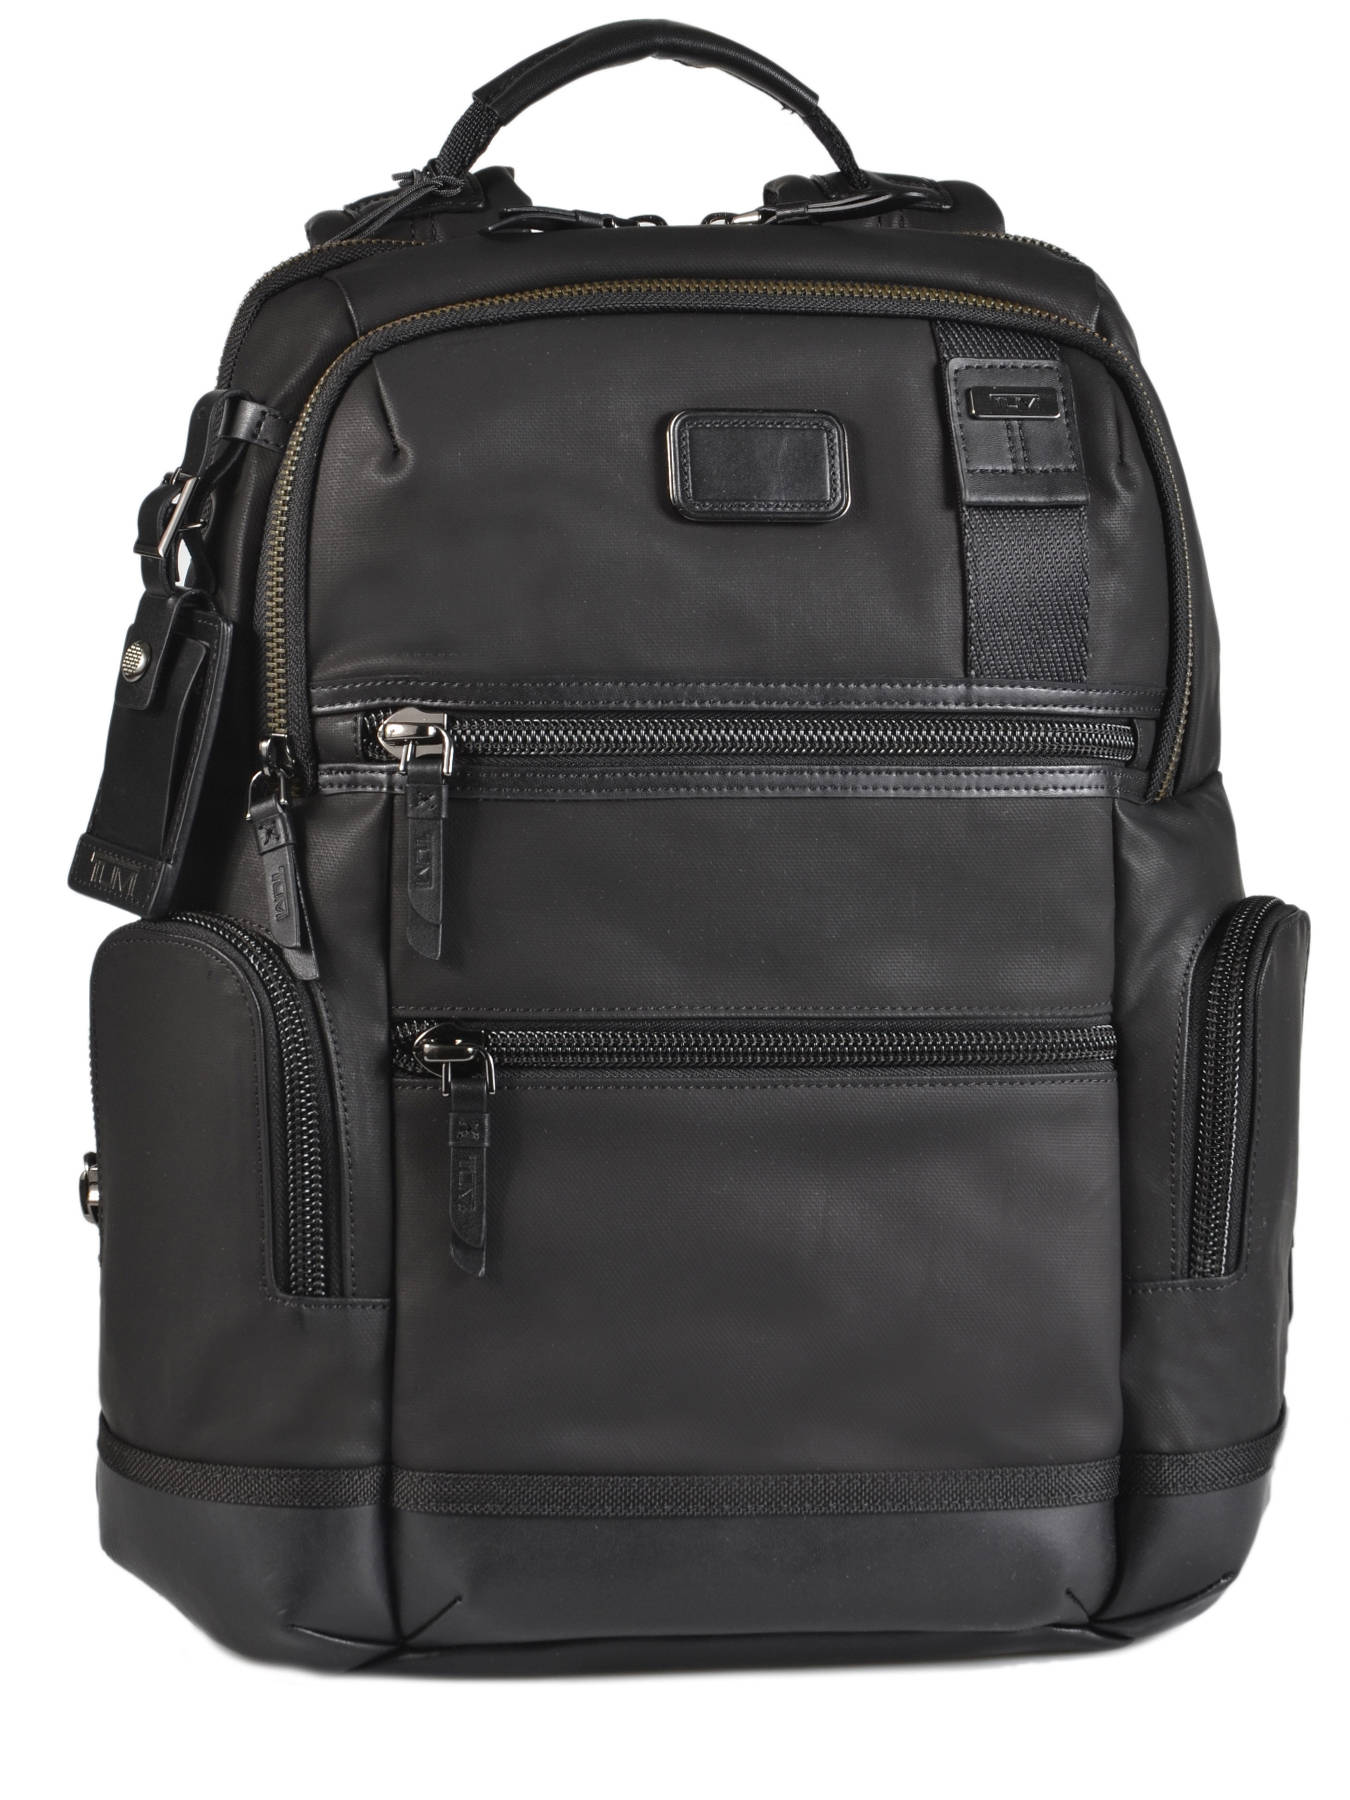 Tumi Backpack Ebay | Tumi Alpha Bravo | Tumi Alpha Bravo Lejeune Backpack